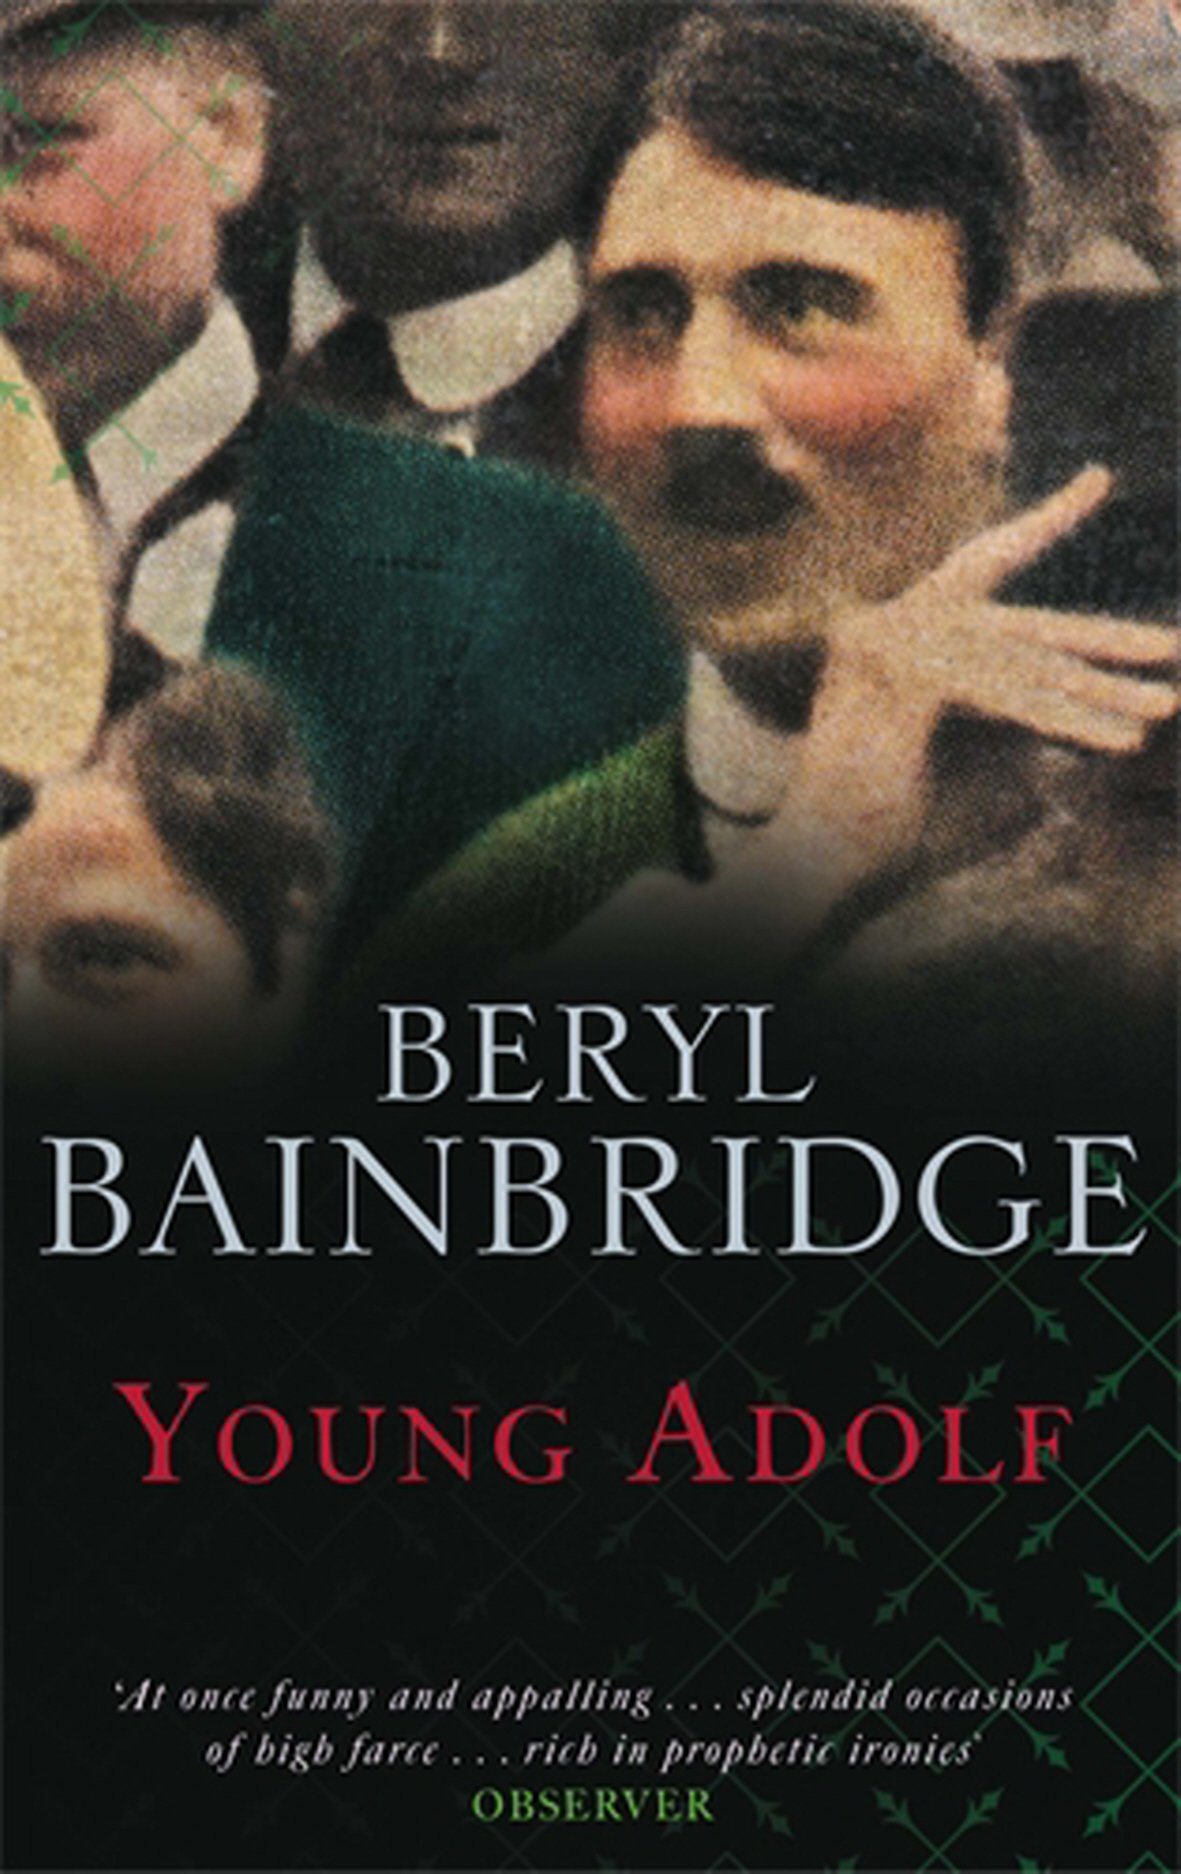 Buy YOUNG ADOLF by Beryl Bainbridge